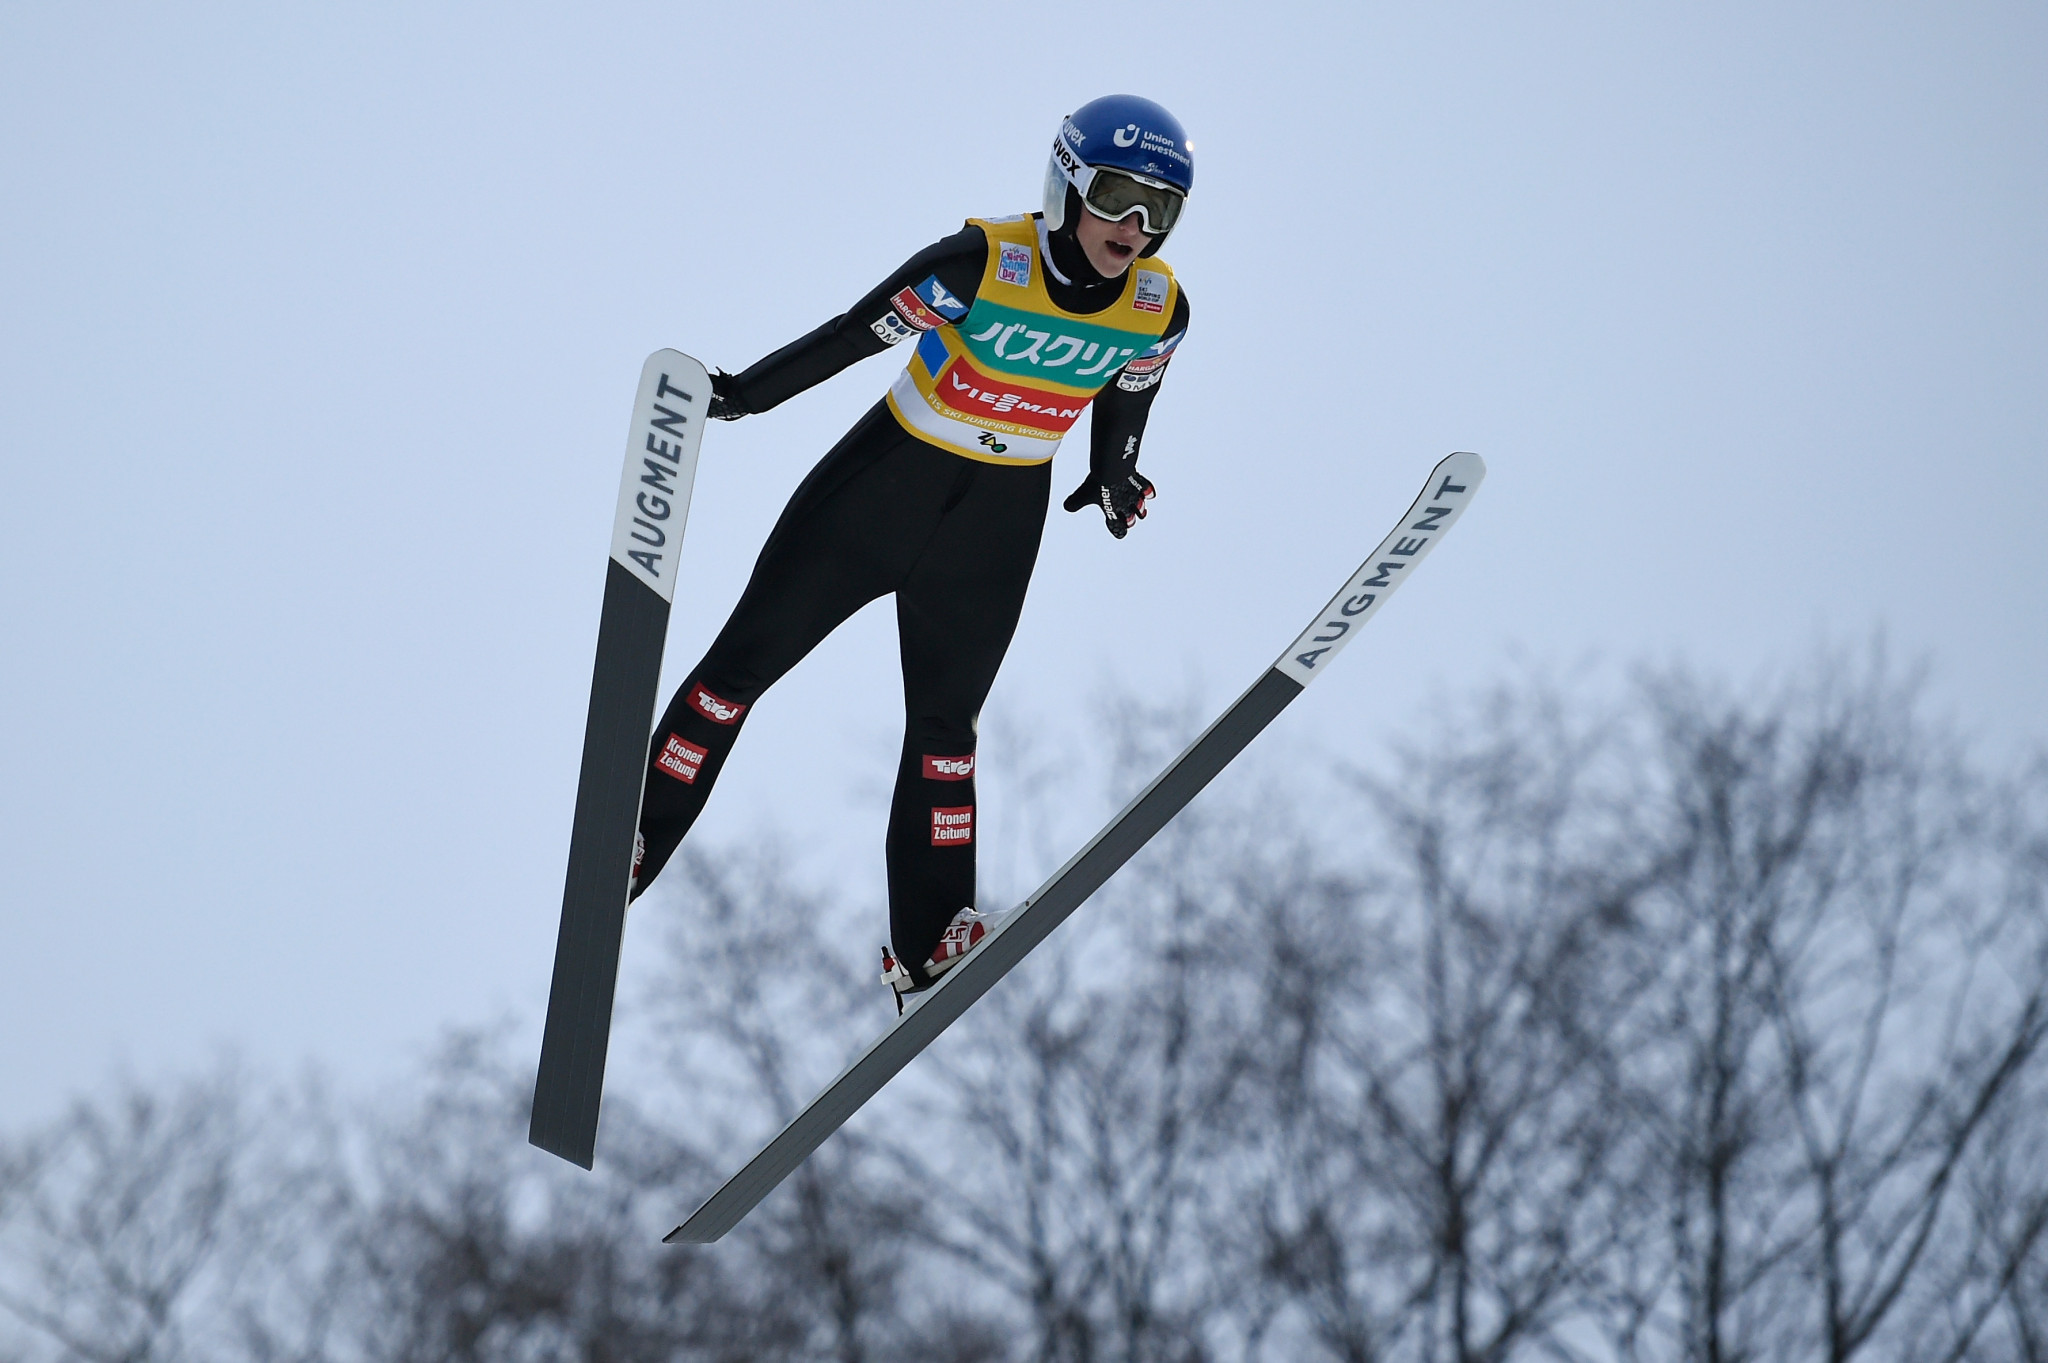 Pinkelnig earns second gold in Zao, as Austrian women take FIS Ski Jumping team title